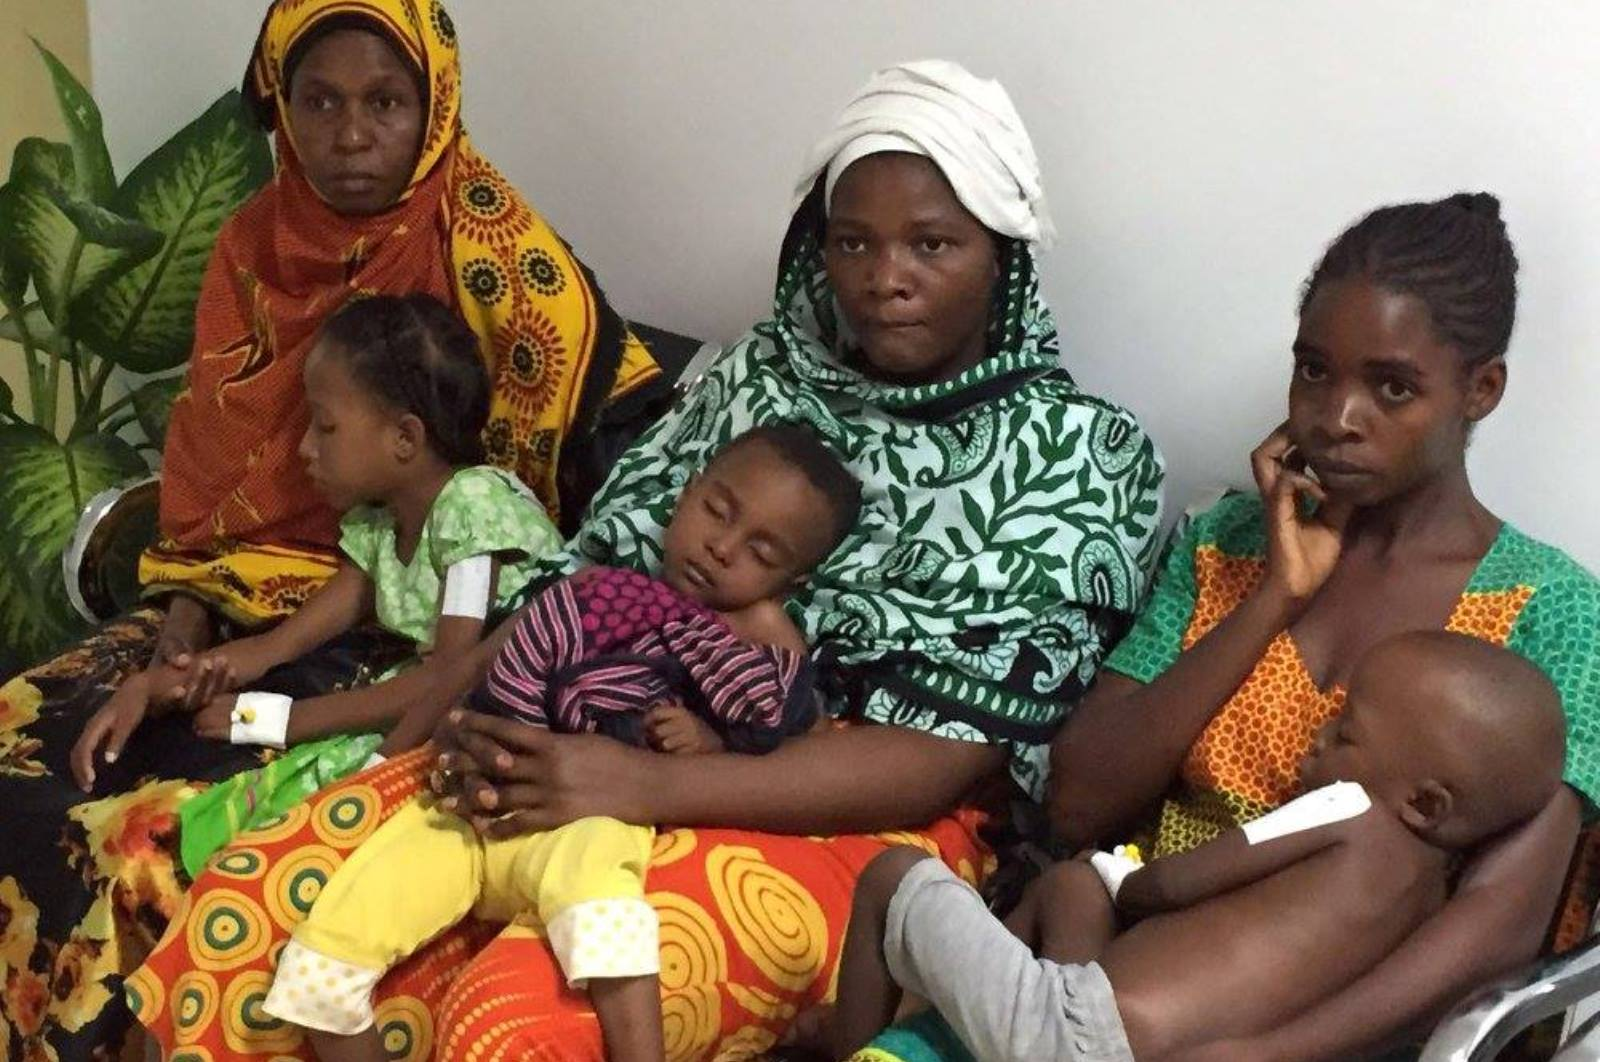 Mothers and children waiting to be evaluated by the Israeli doctors in Tanzania. Photo courtesy of SACH